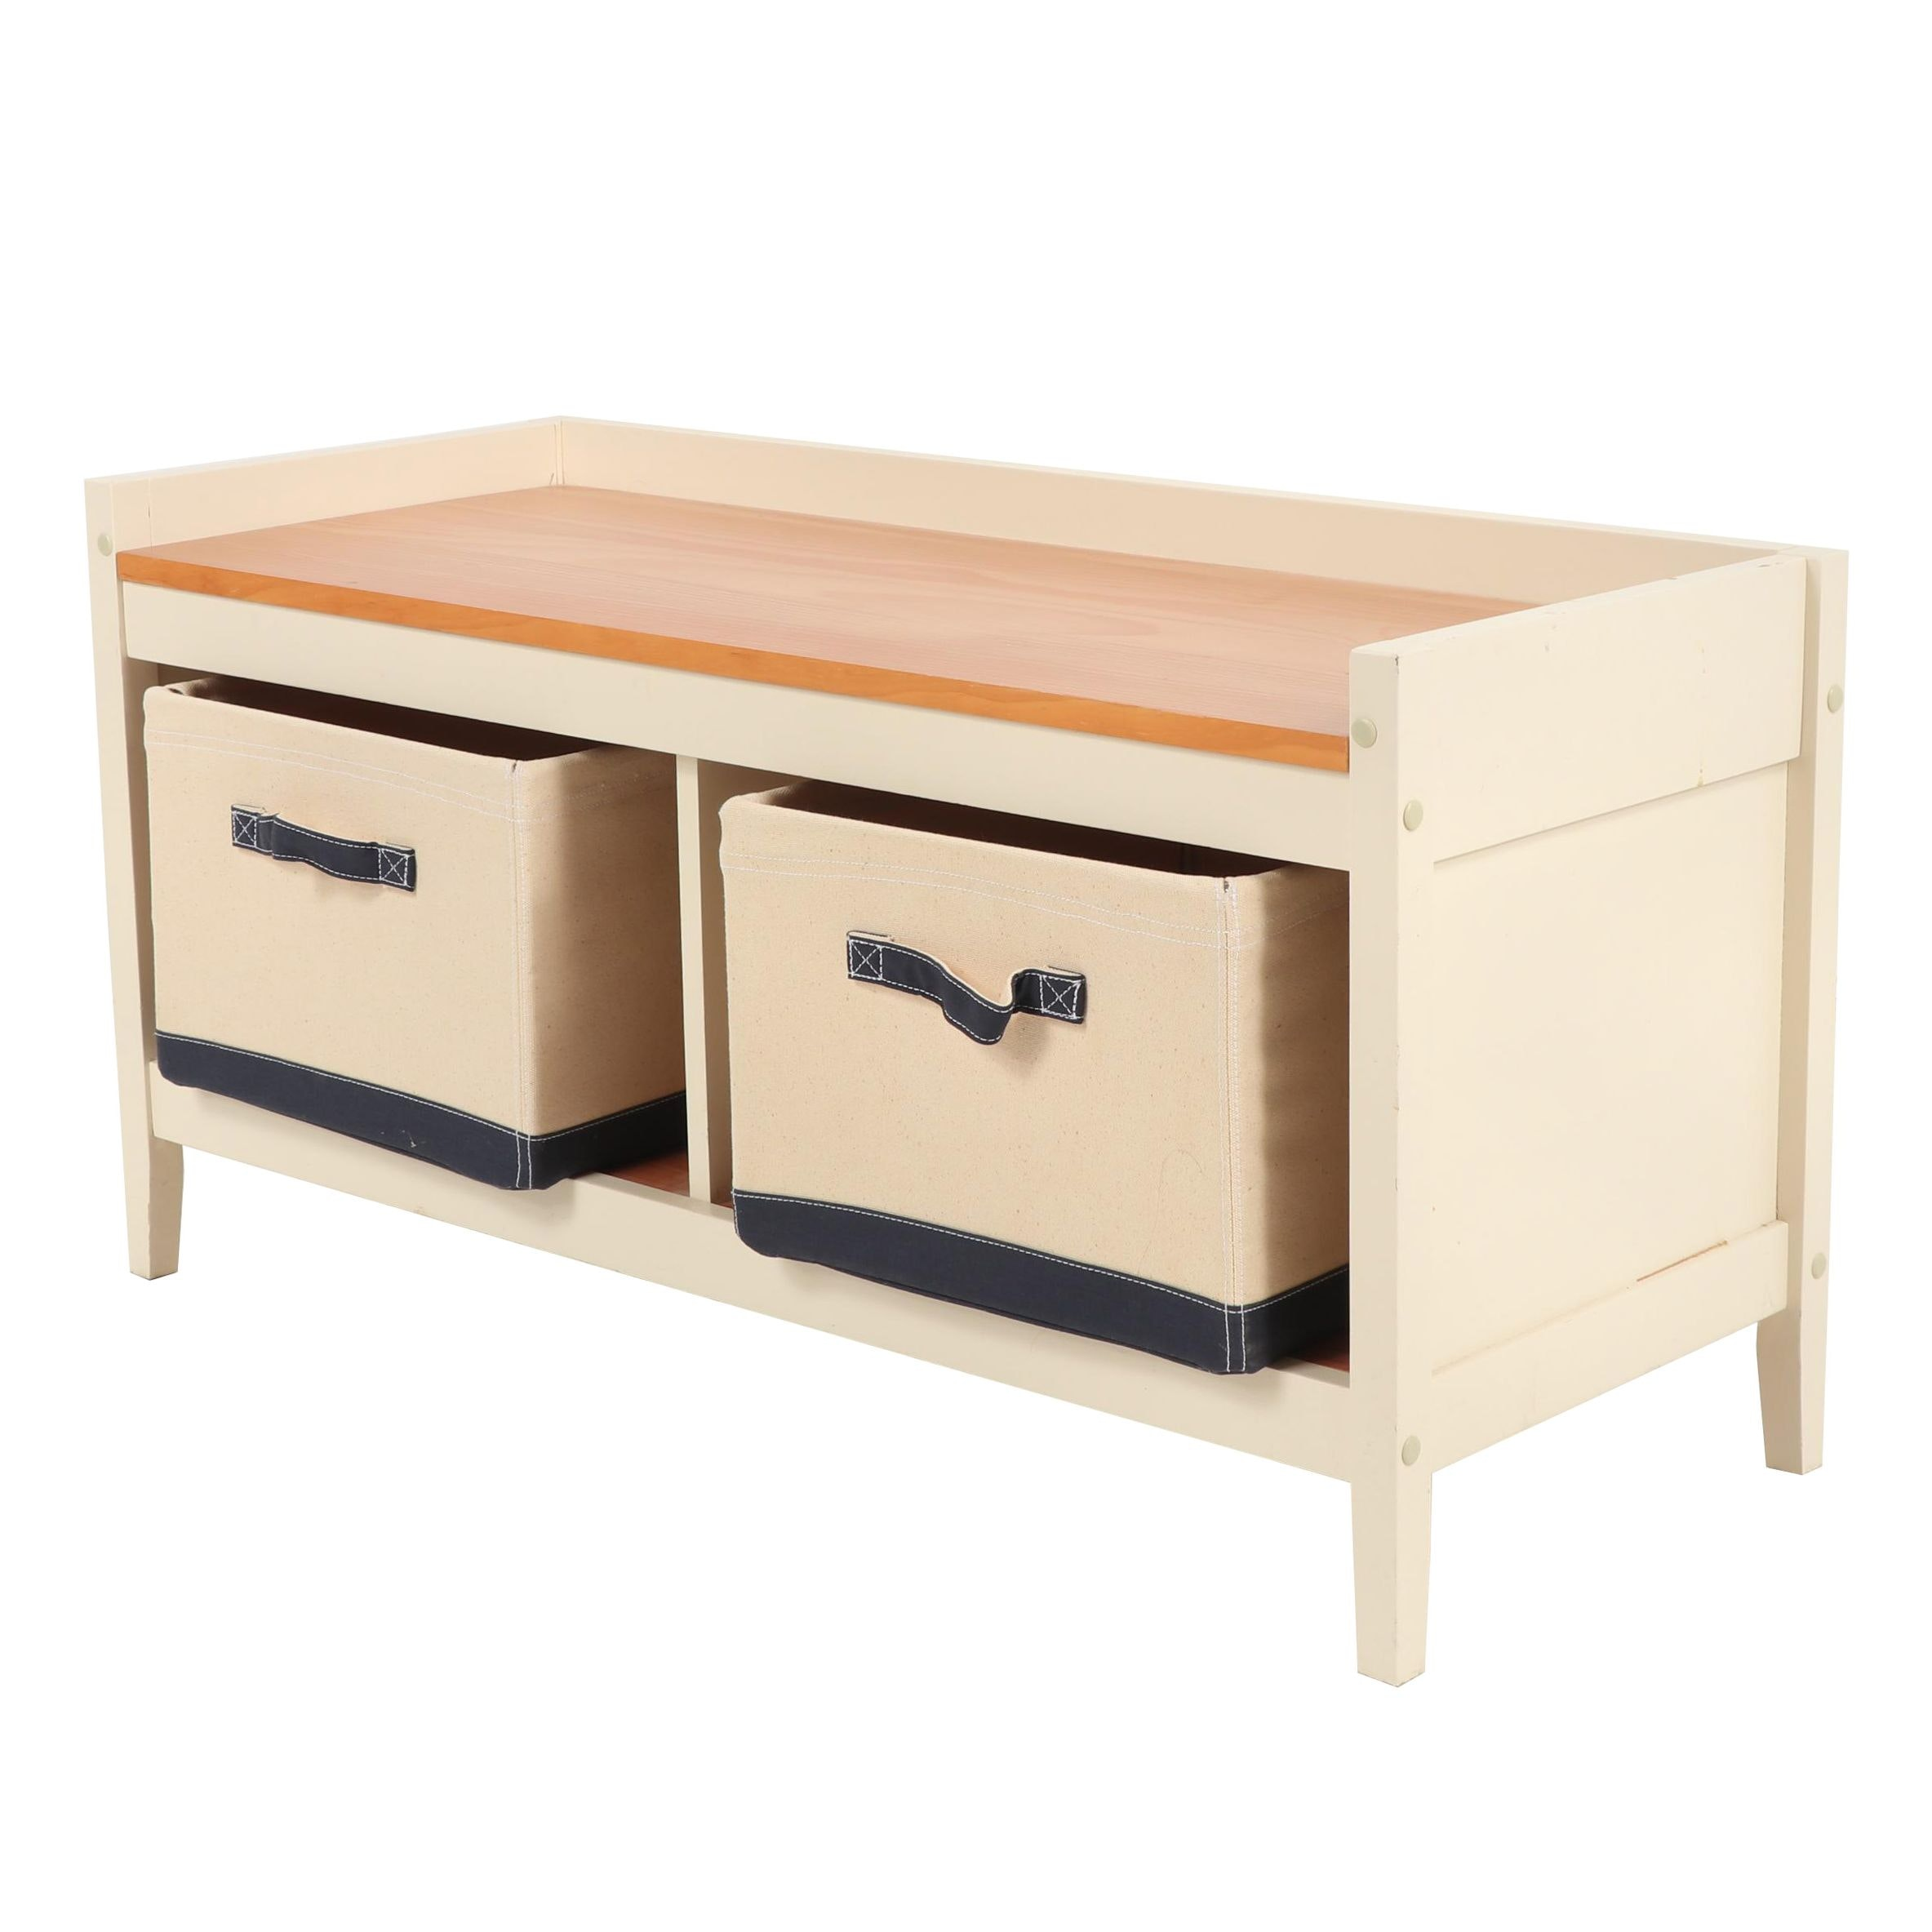 Contemporary Storage Bench with Cushion and Personalized Storage Baskets